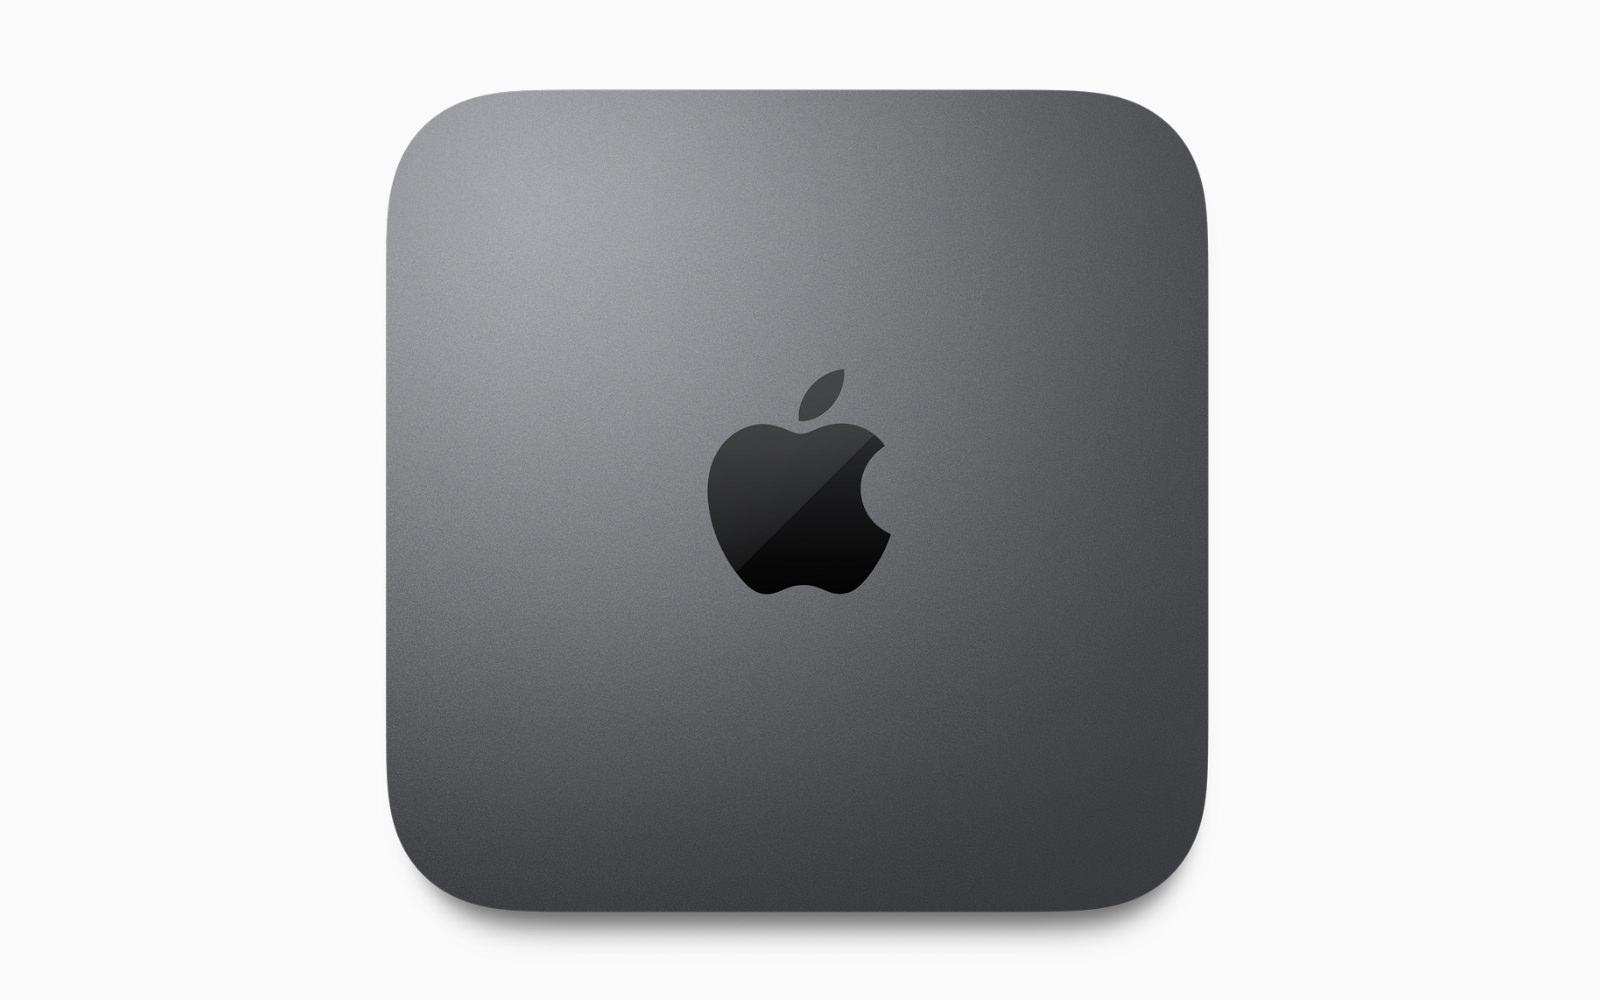 Mac mini official image